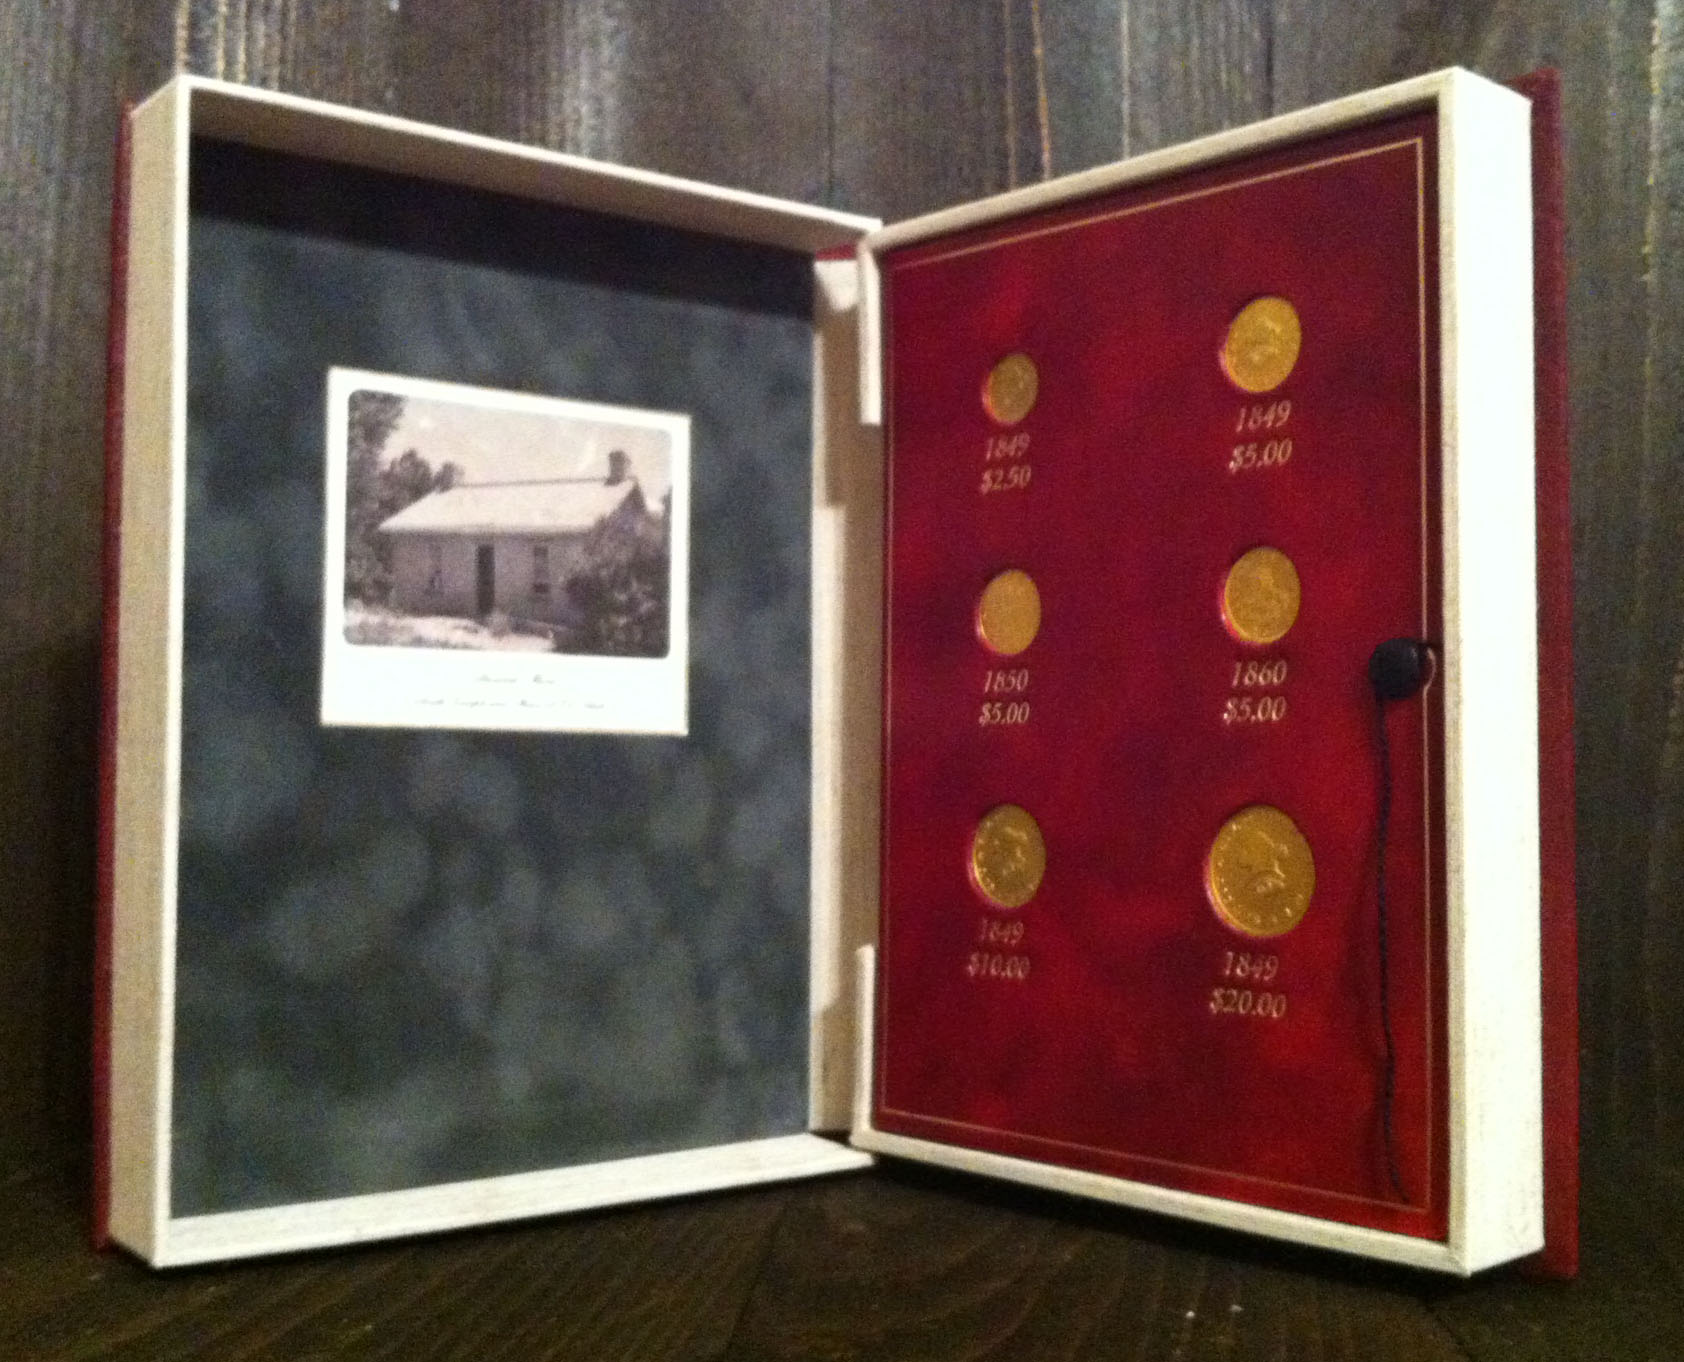 Inside cover of the presentation clamshell for the Mormon gold pieces.